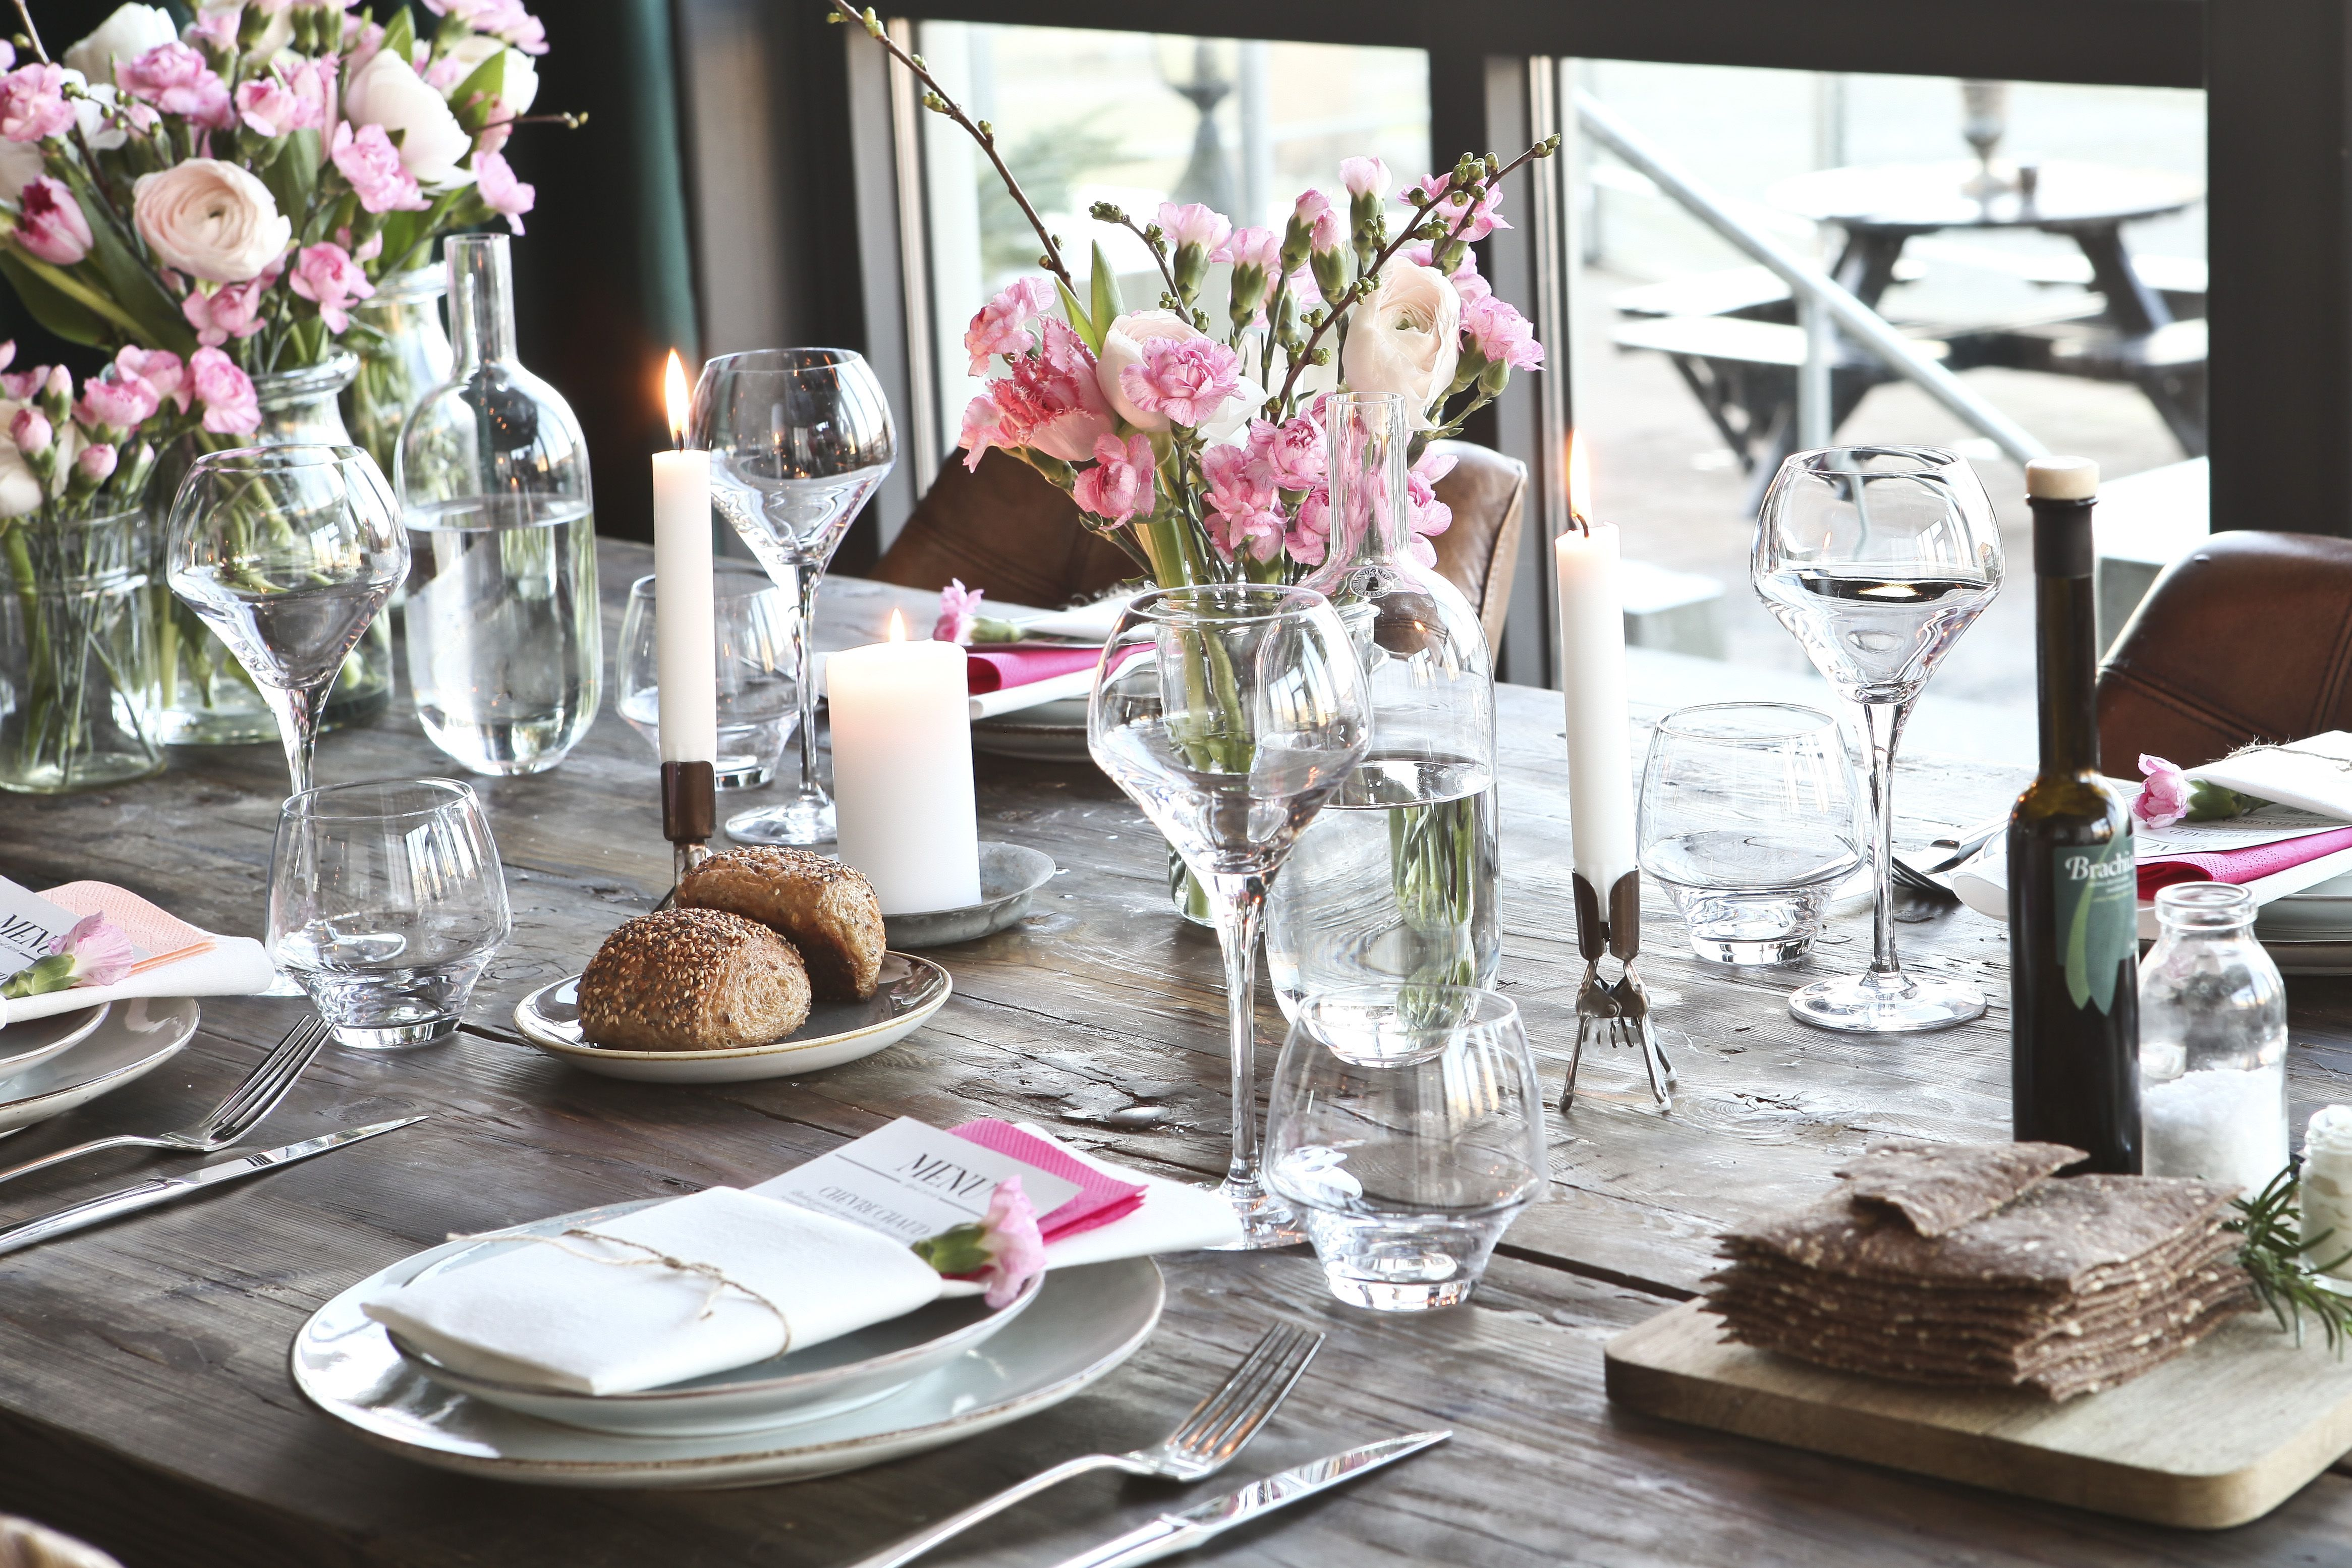 Our spring table settings looks gorgeous with Tork LinStyle ...